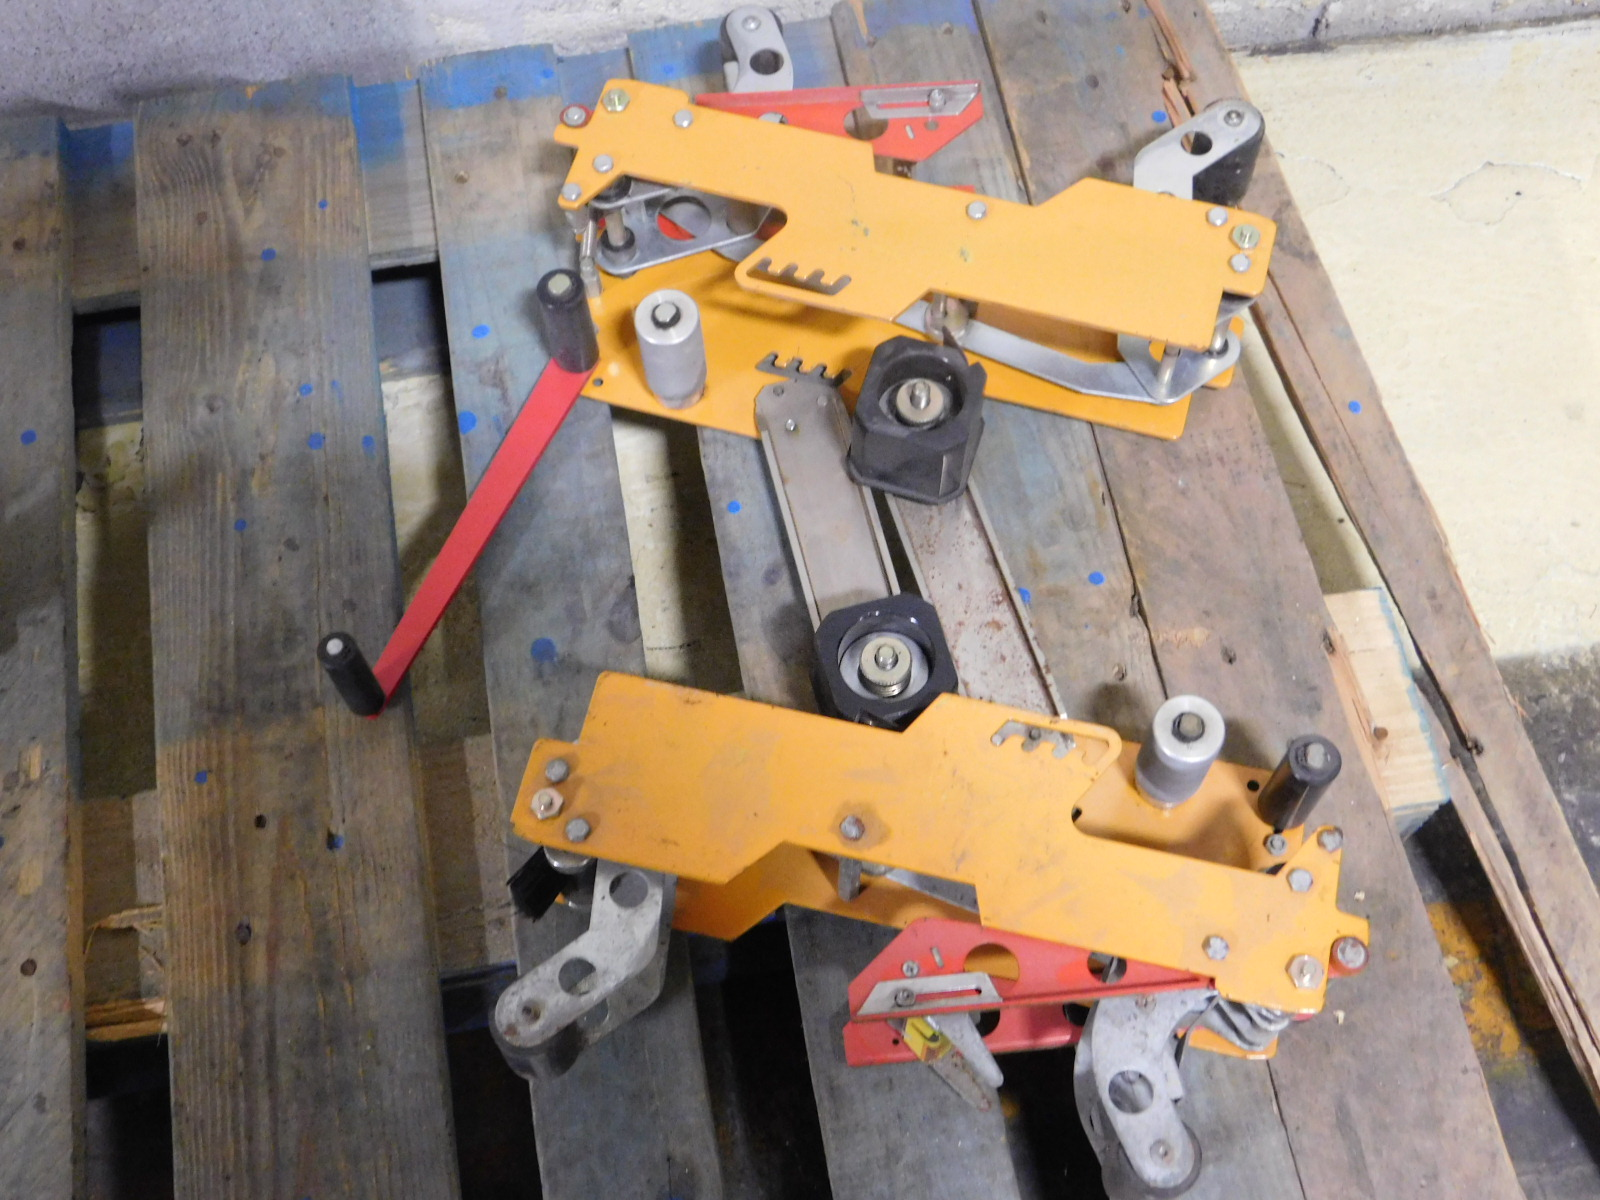 Lot 37 - Lot of 2 Box Tapers :equipment located at Clark Logistic Services |314-389-4004 |ST. LOUIS